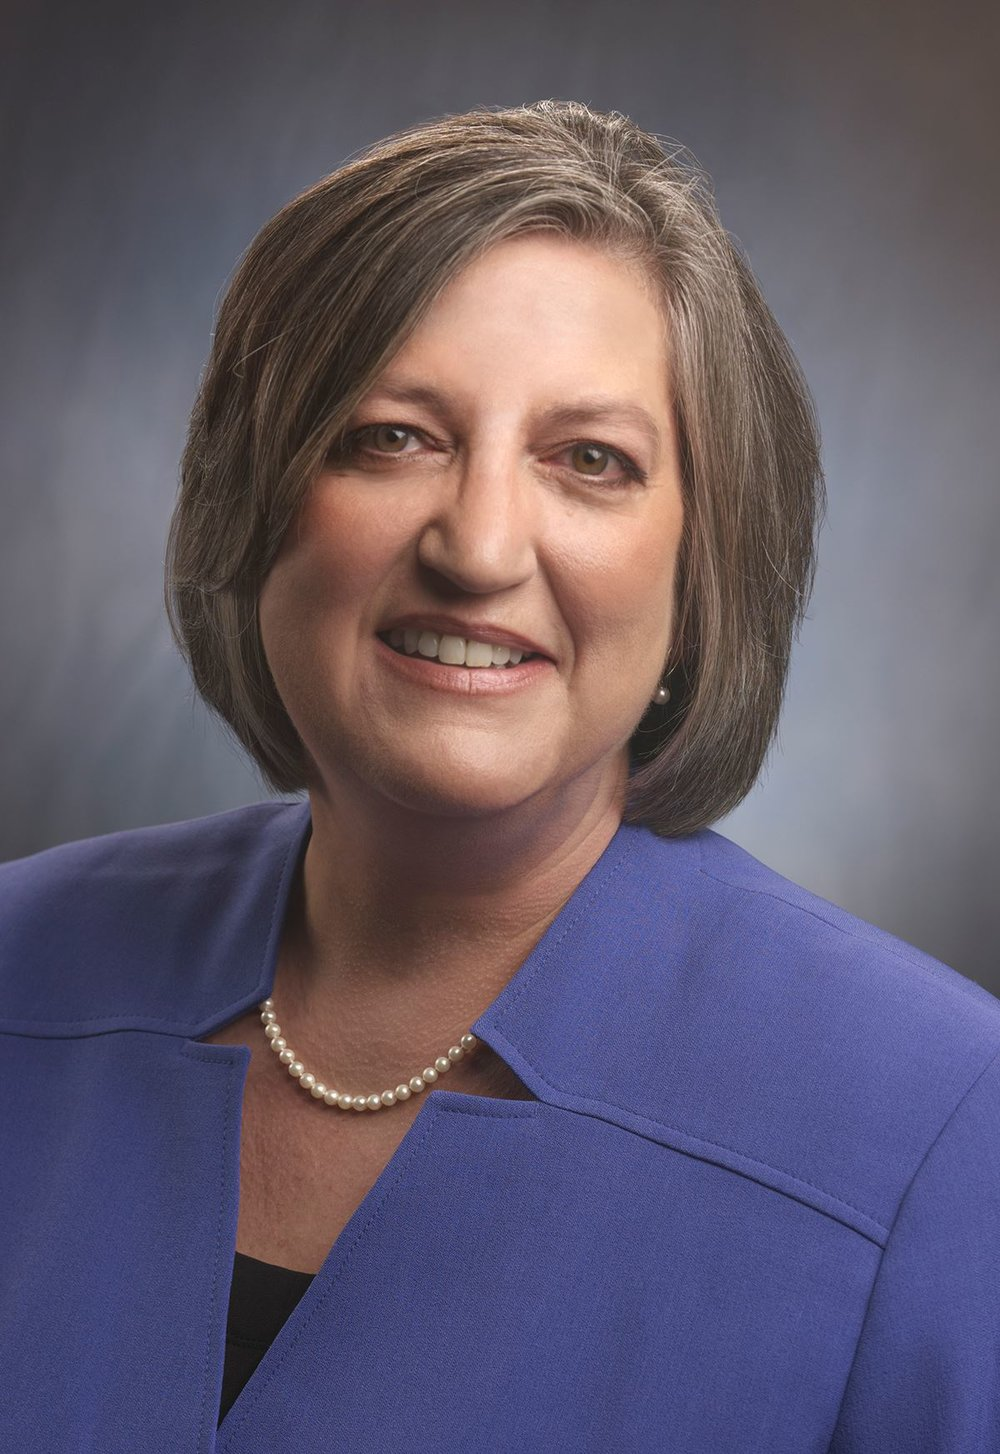 Kathi Cozzone - Chester County commissioner